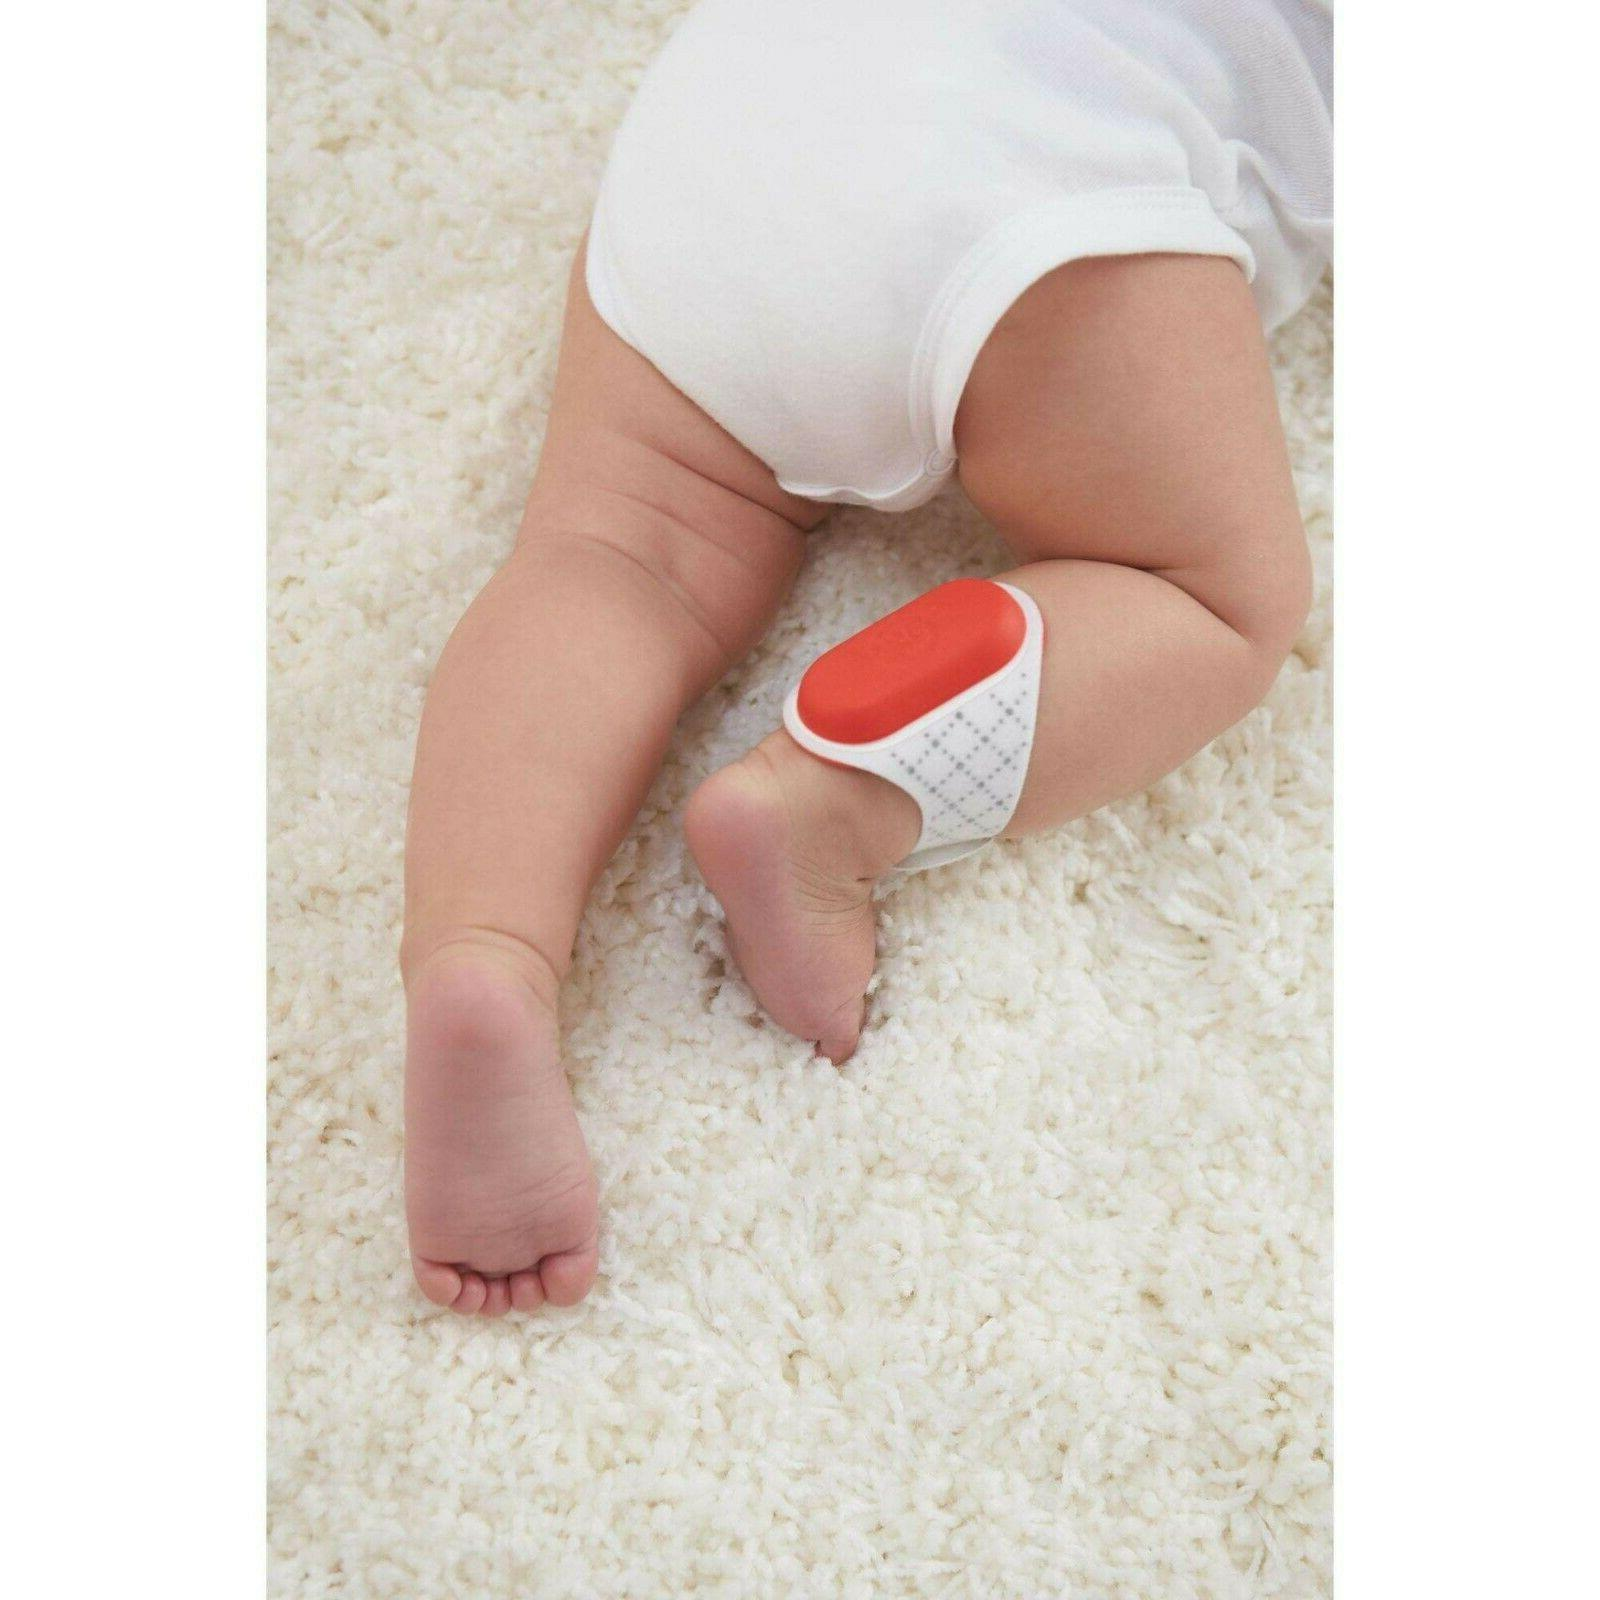 Fisher-Price Sproutling Wearable Monitor -New!